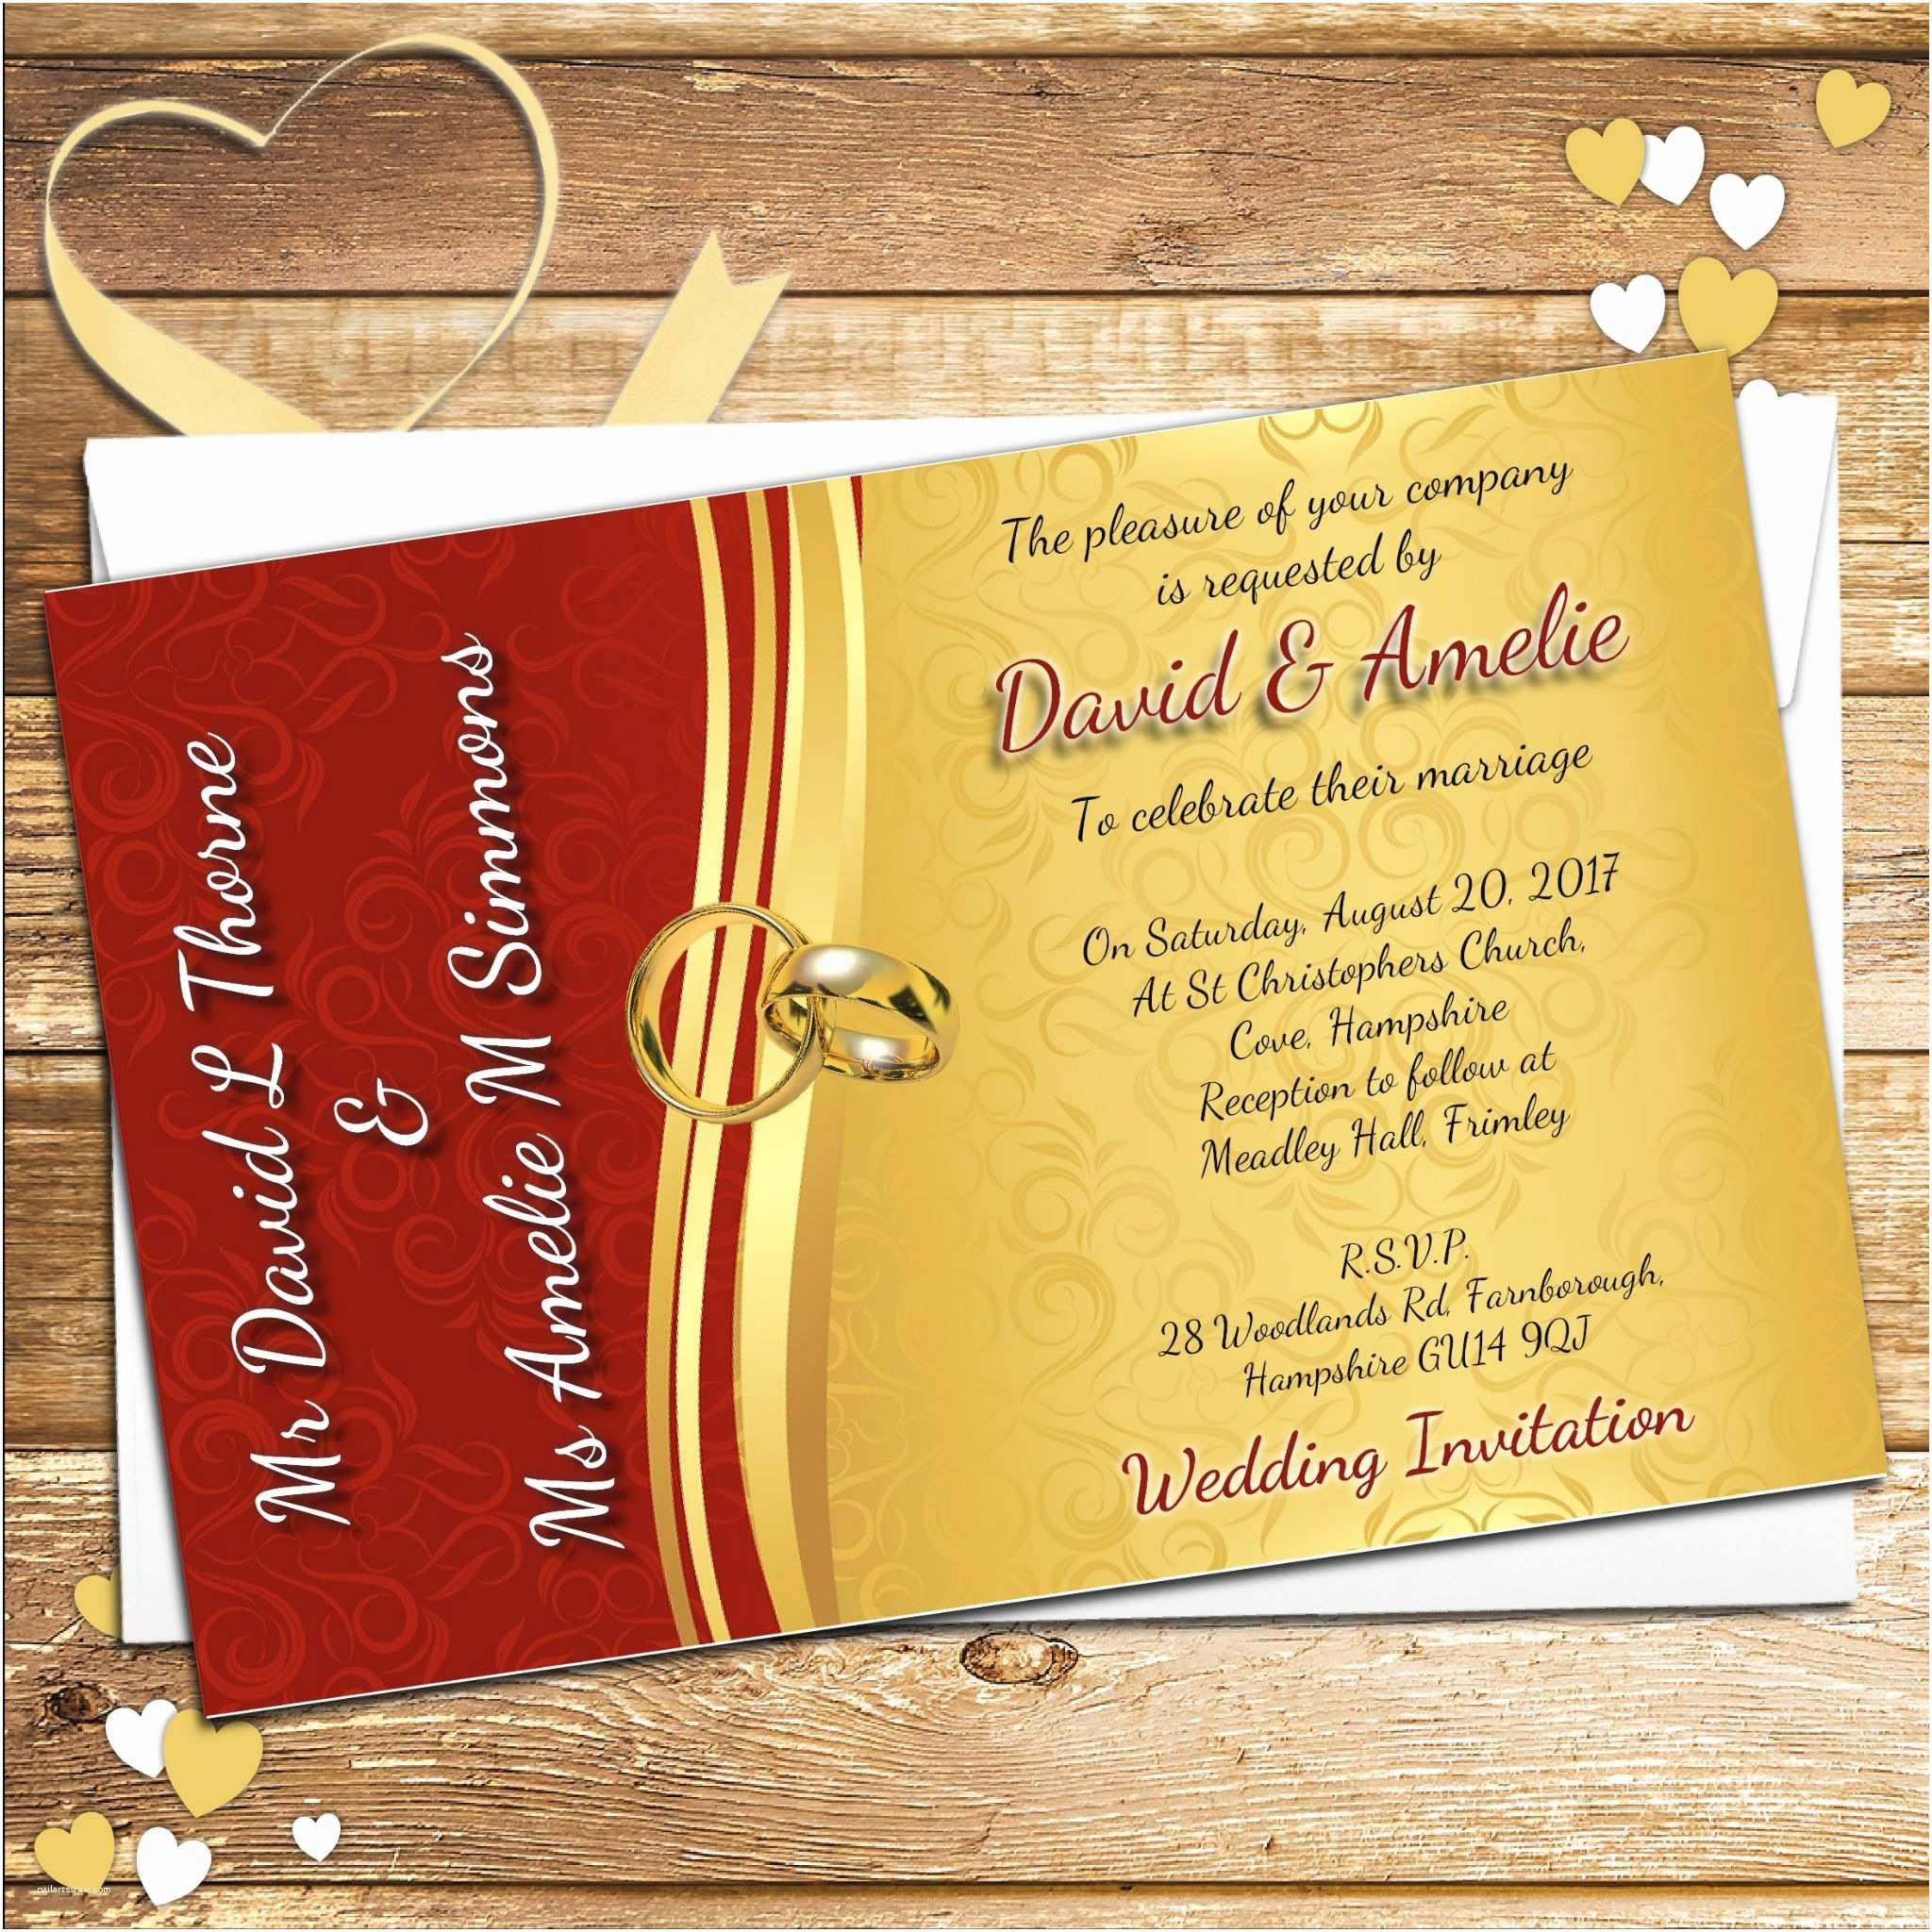 Red White and Gold Wedding Invitations 10 Personalised Red & Gold Wedding Invitations Day evening N66